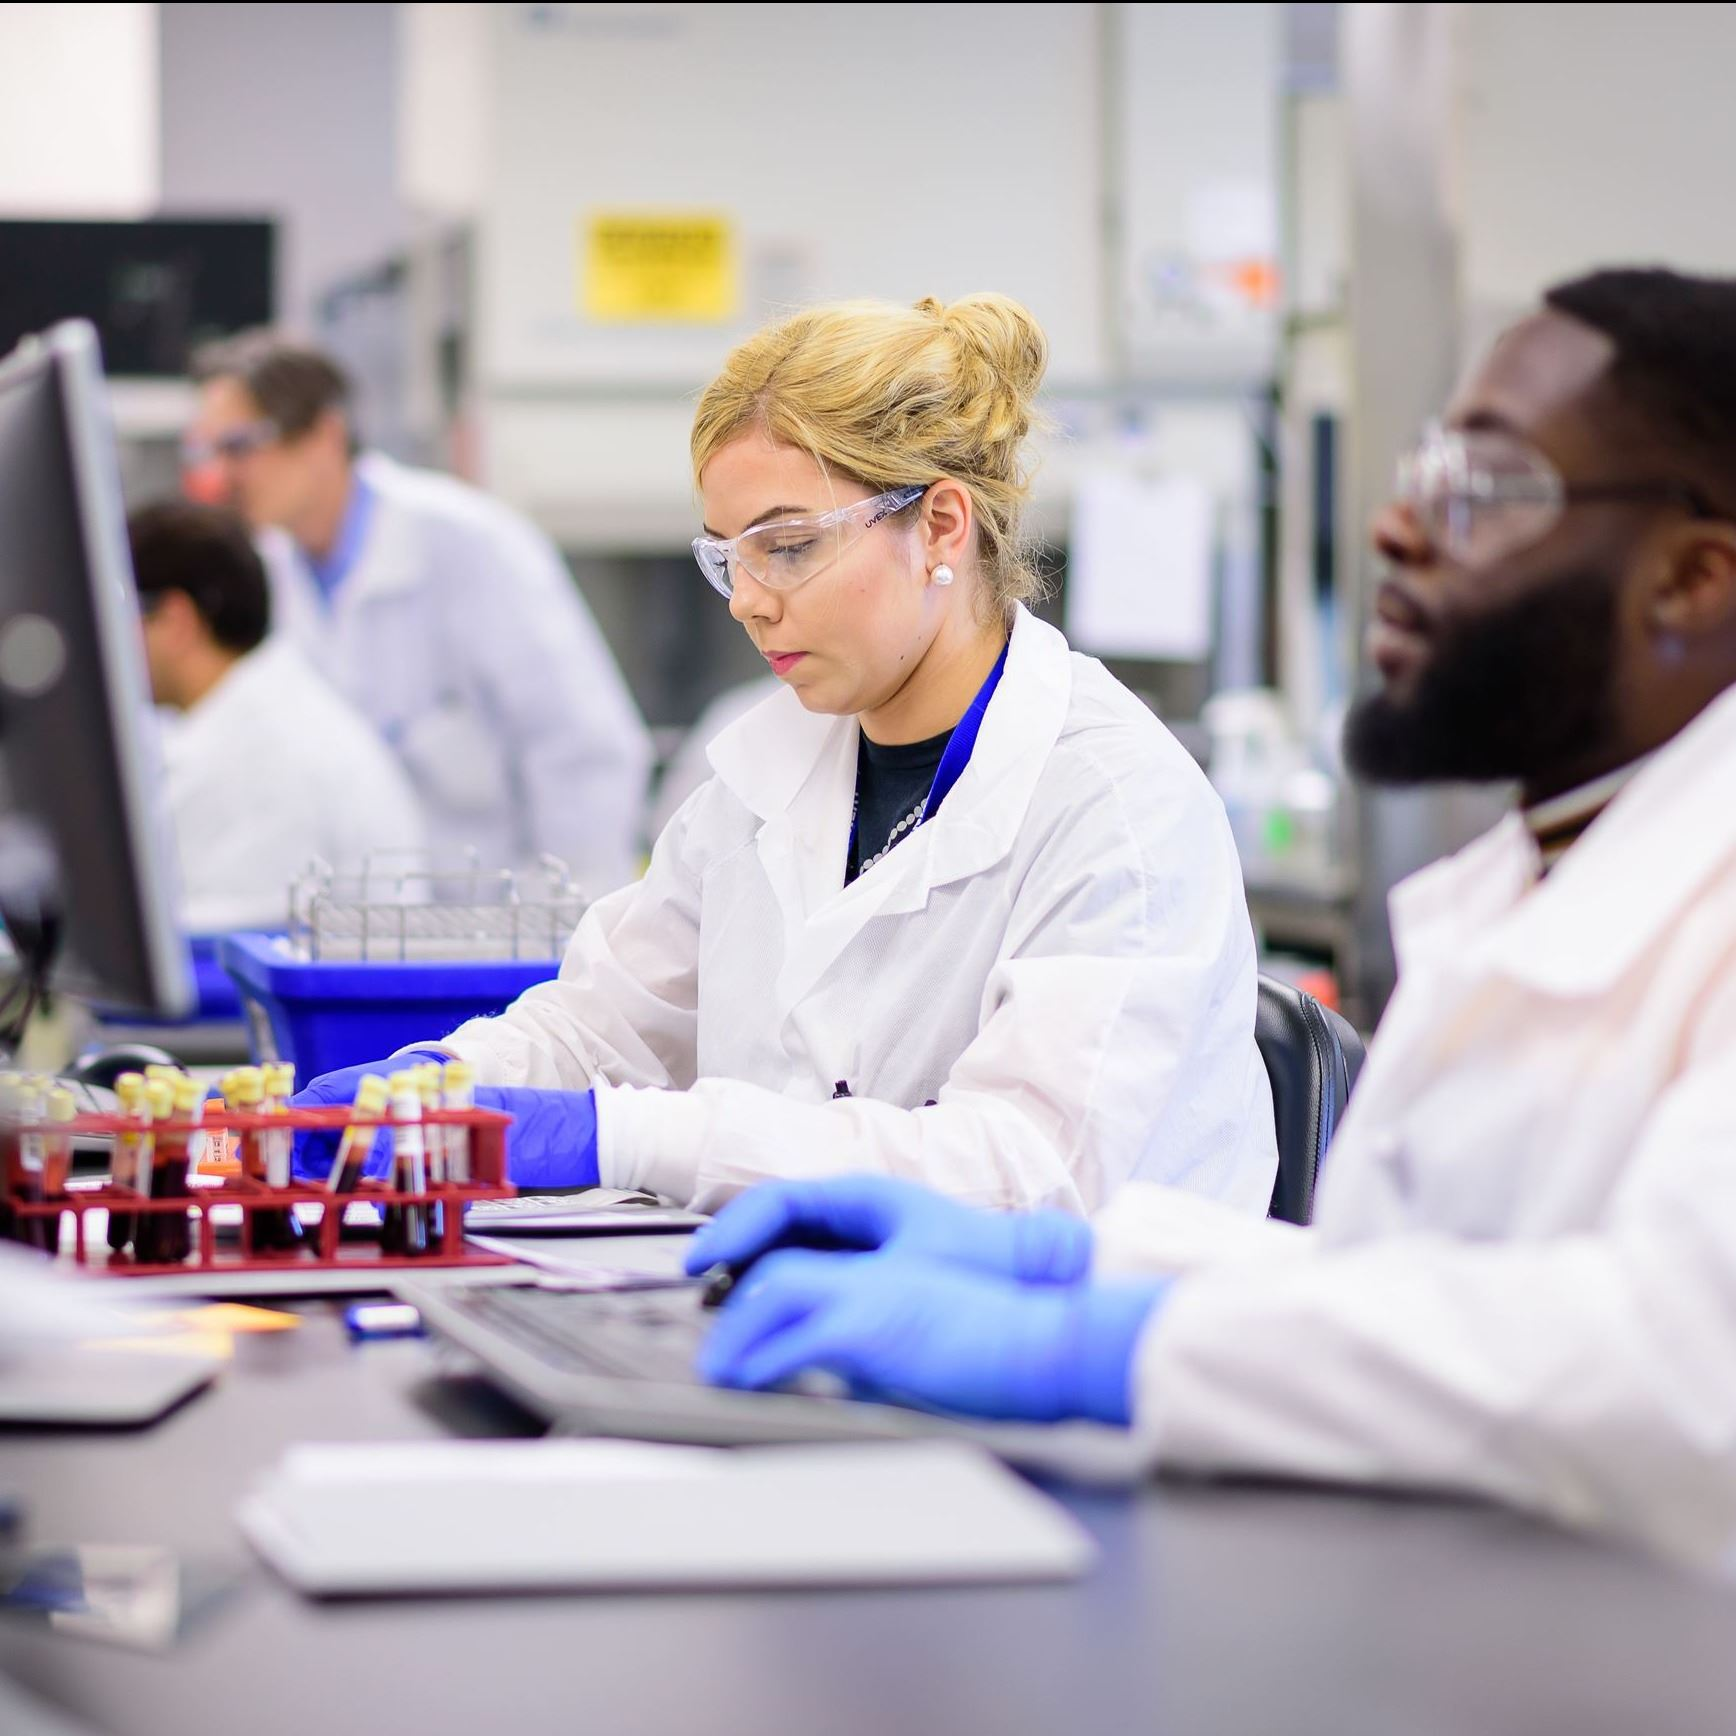 Men and women wearing white coats and protective eyewear in a lab